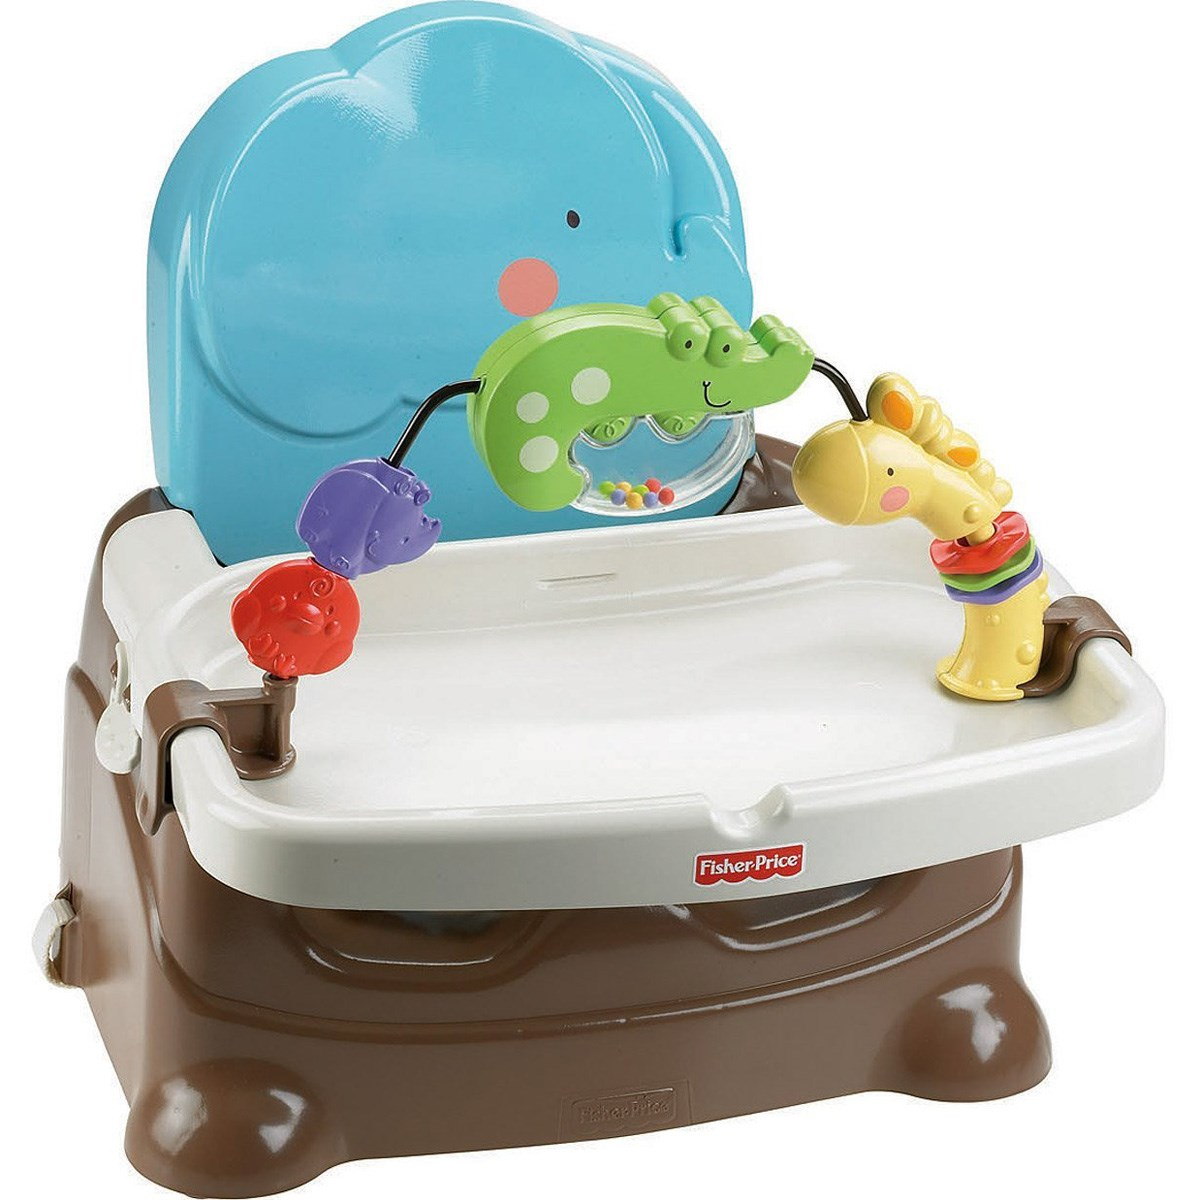 Ghe an cho be Fisher price